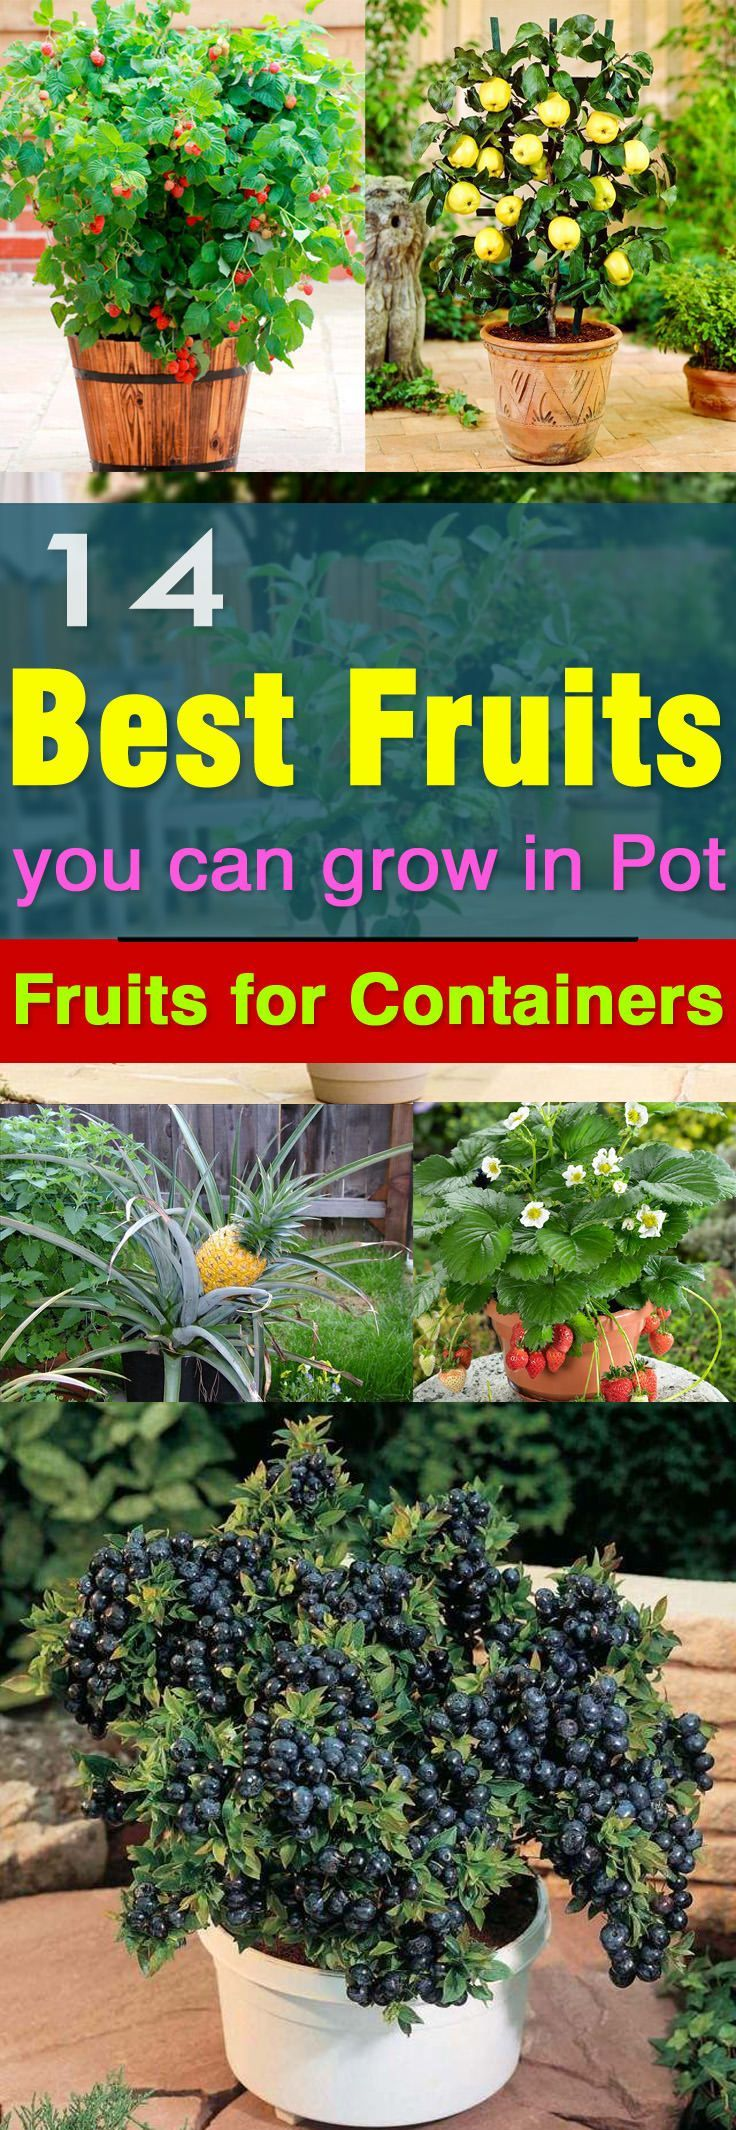 Not Only The Vegetables But Fruits Can Be Grown In Pots Too. Here Are 14